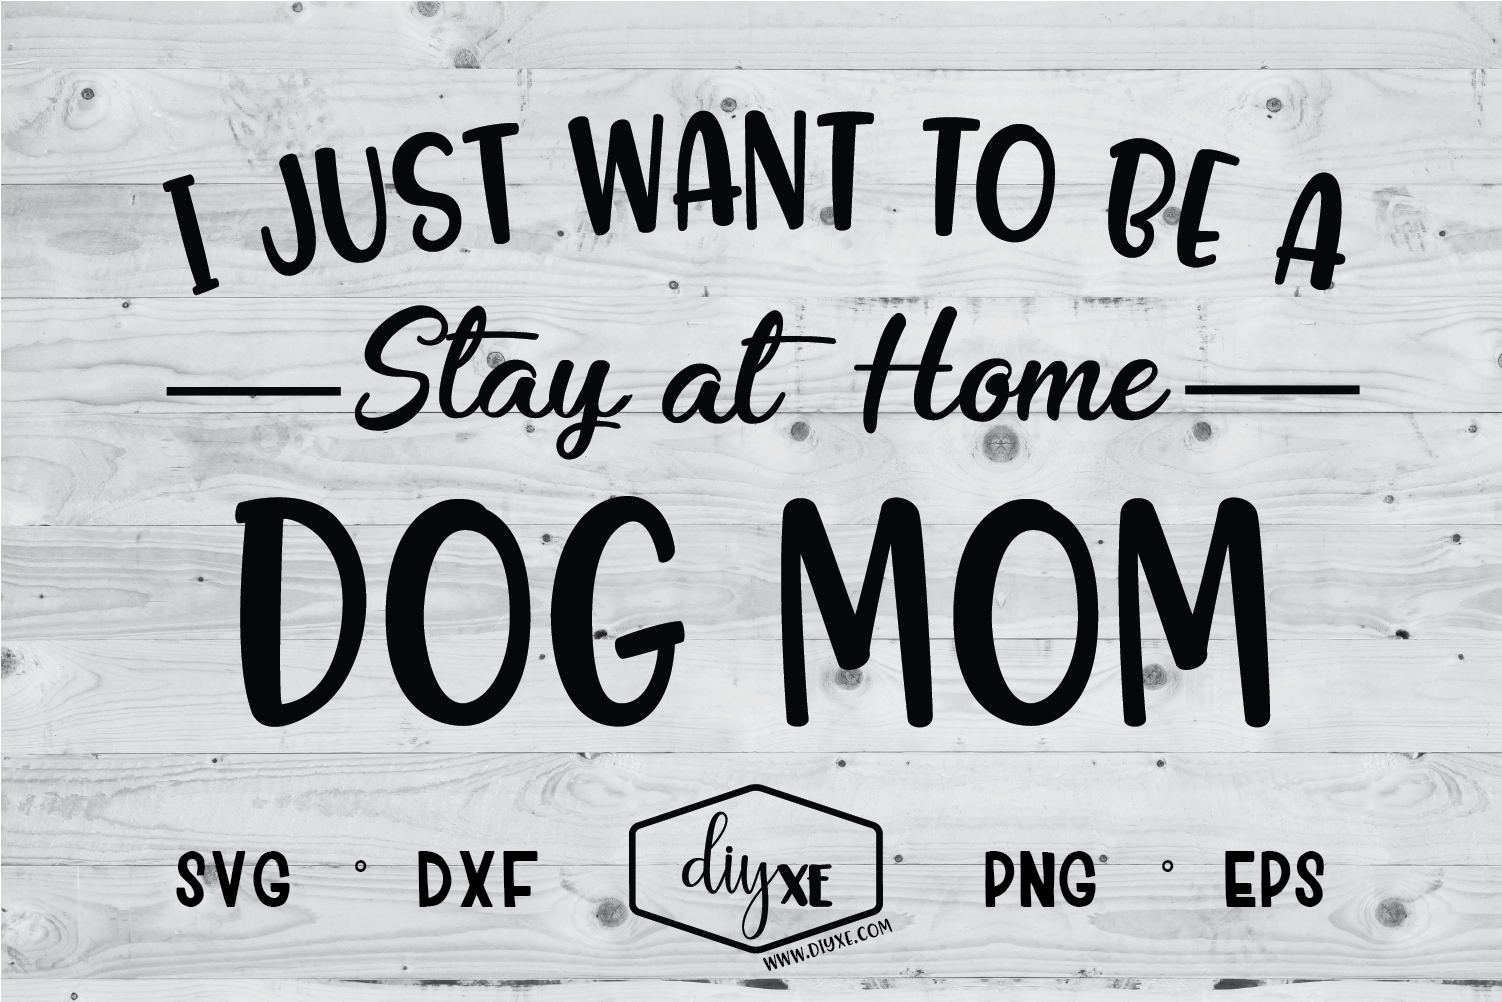 Stay at Home Dog Mom SVG (Graphic) by Sheryl Holst · Creative Fabrica #stayathome